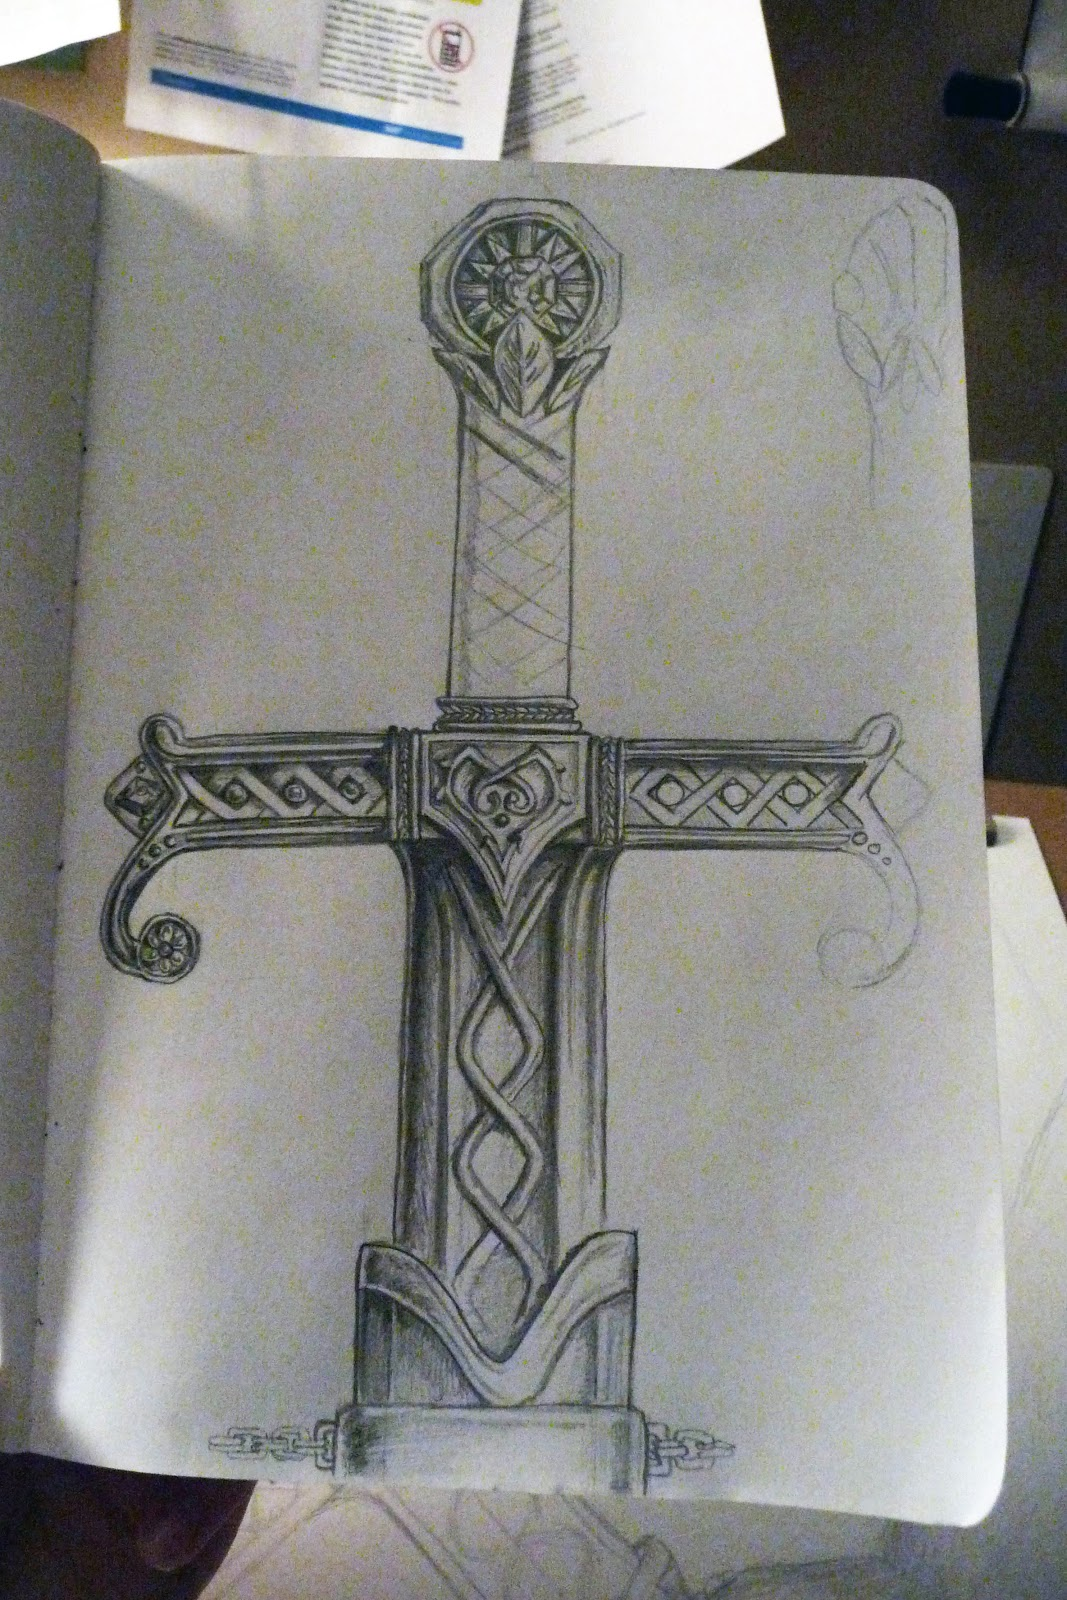 Drawn dagger epic The design looking scabbard did